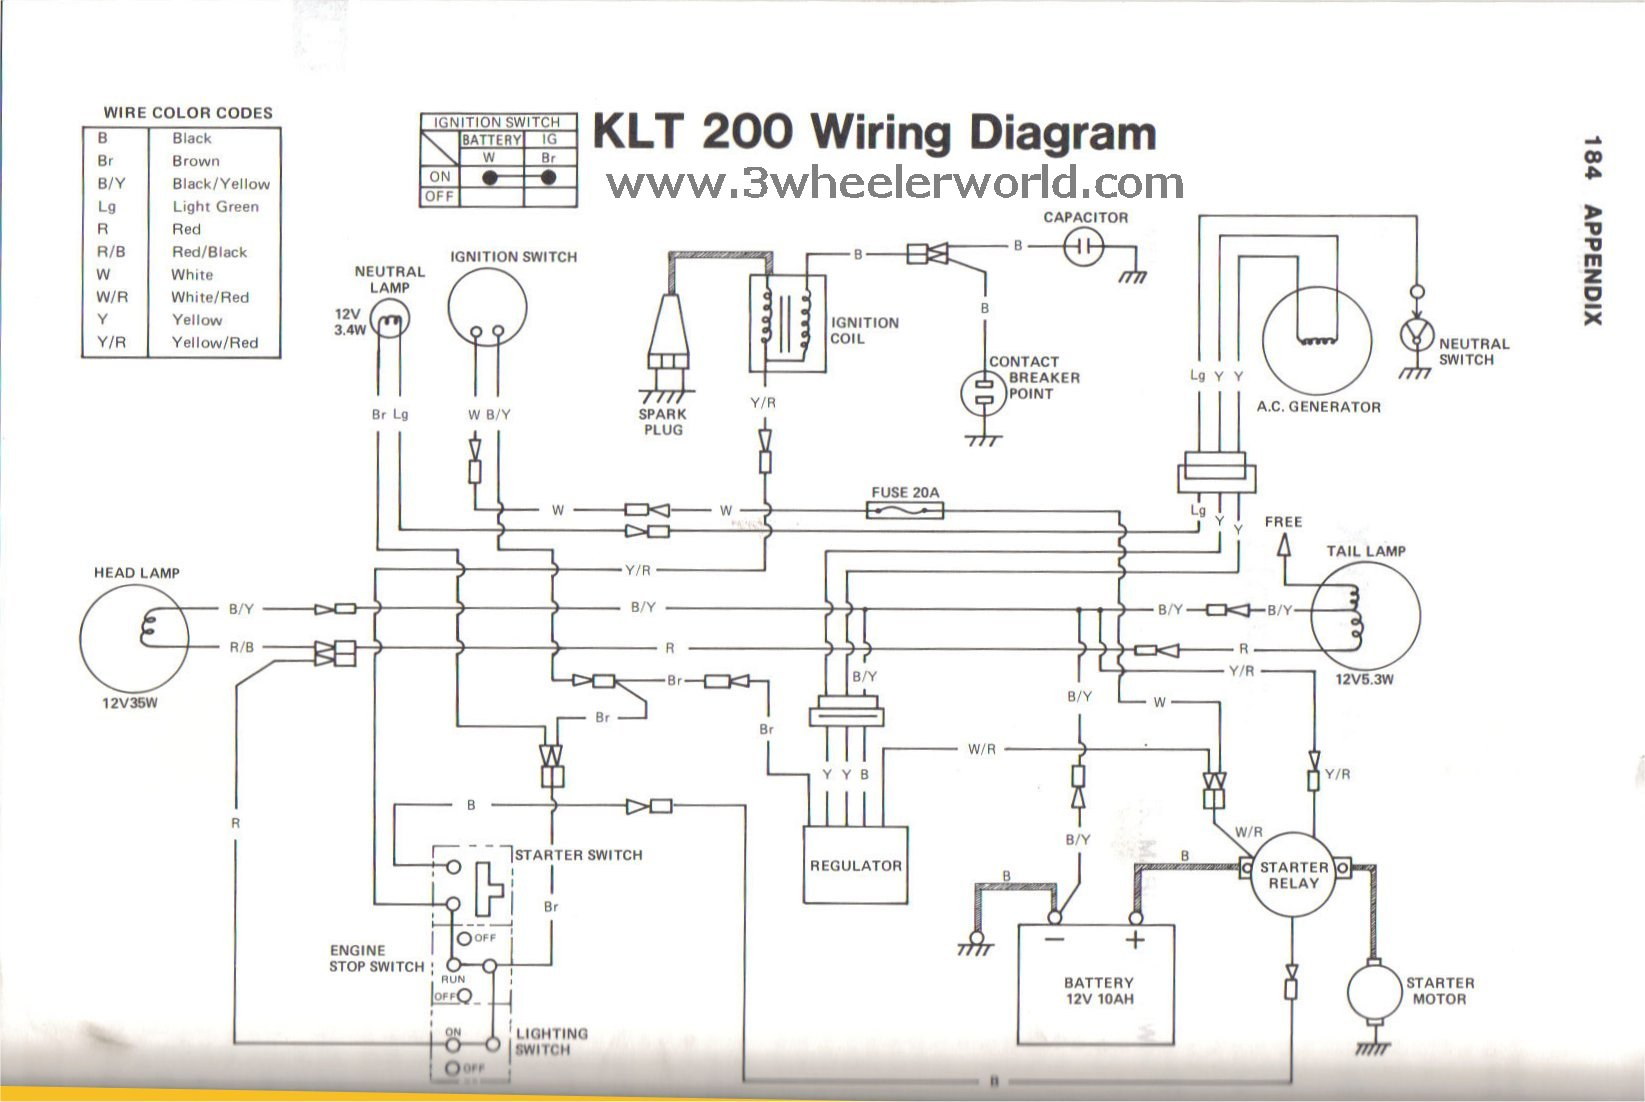 hight resolution of 86 lt250r wiring diagram online wiring diagram86 lt250r wiring diagram basic electronics wiring diagram 86 lt250r